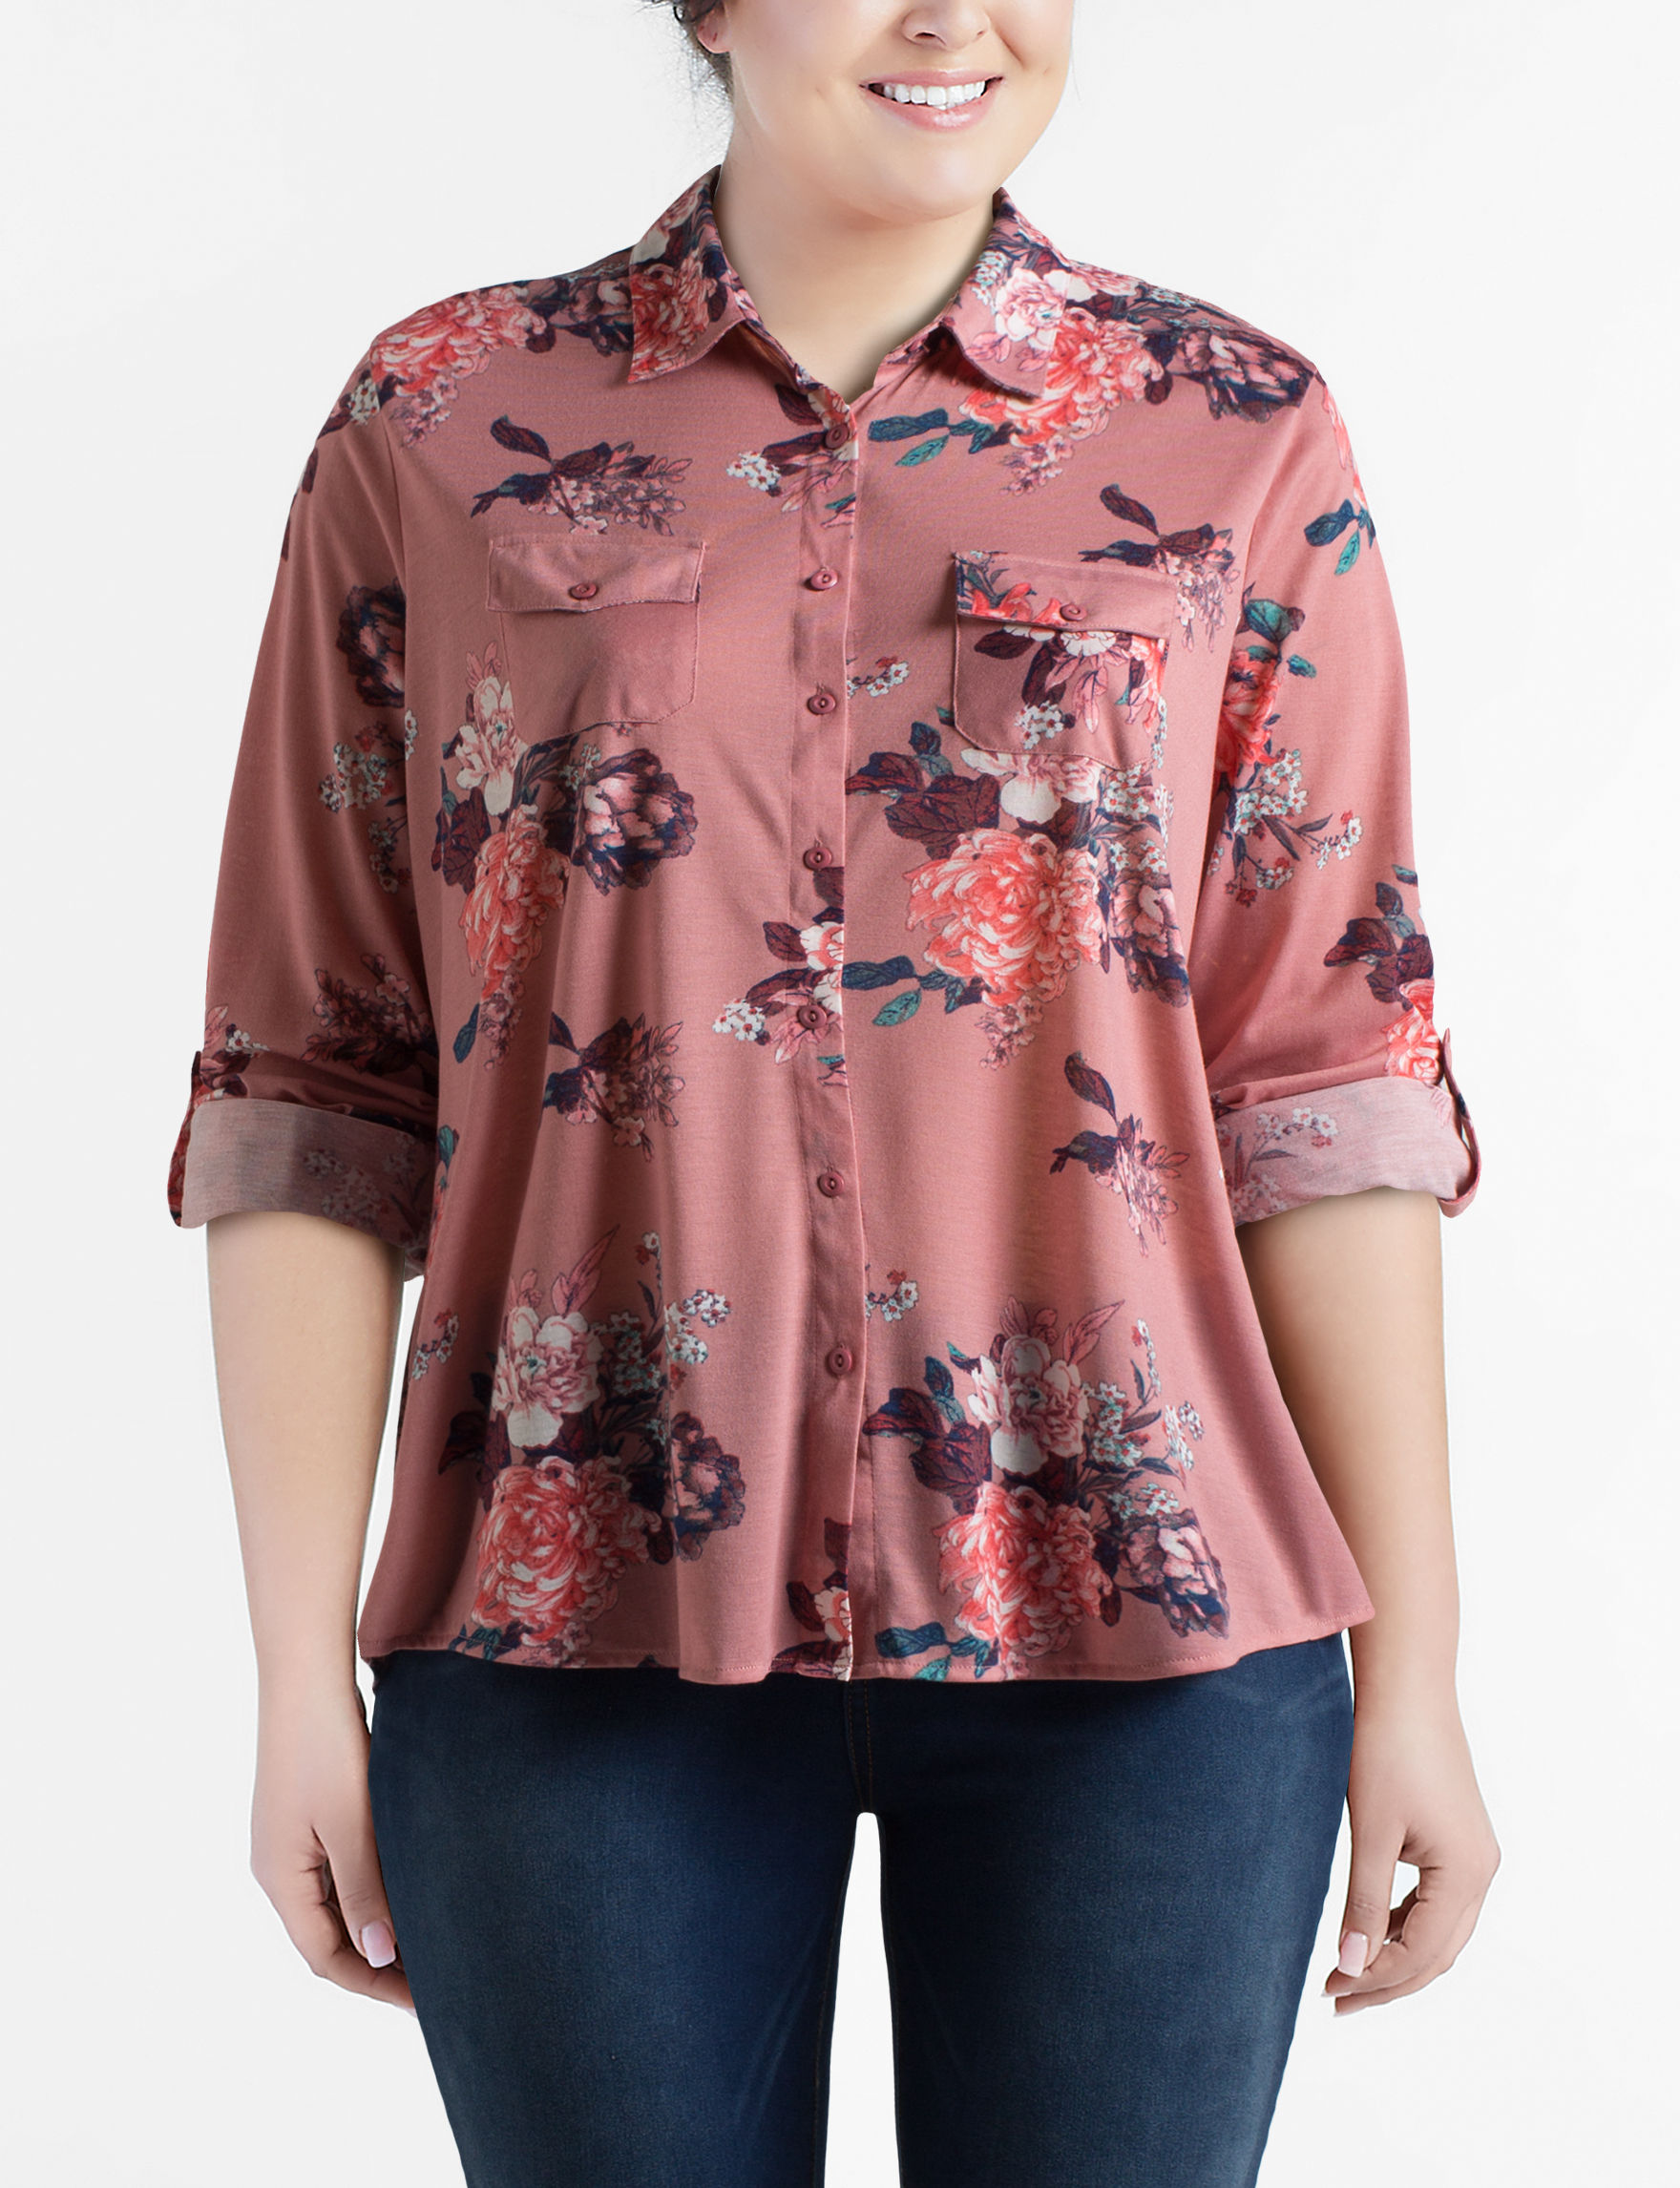 Justify Pink Floral Shirts & Blouses